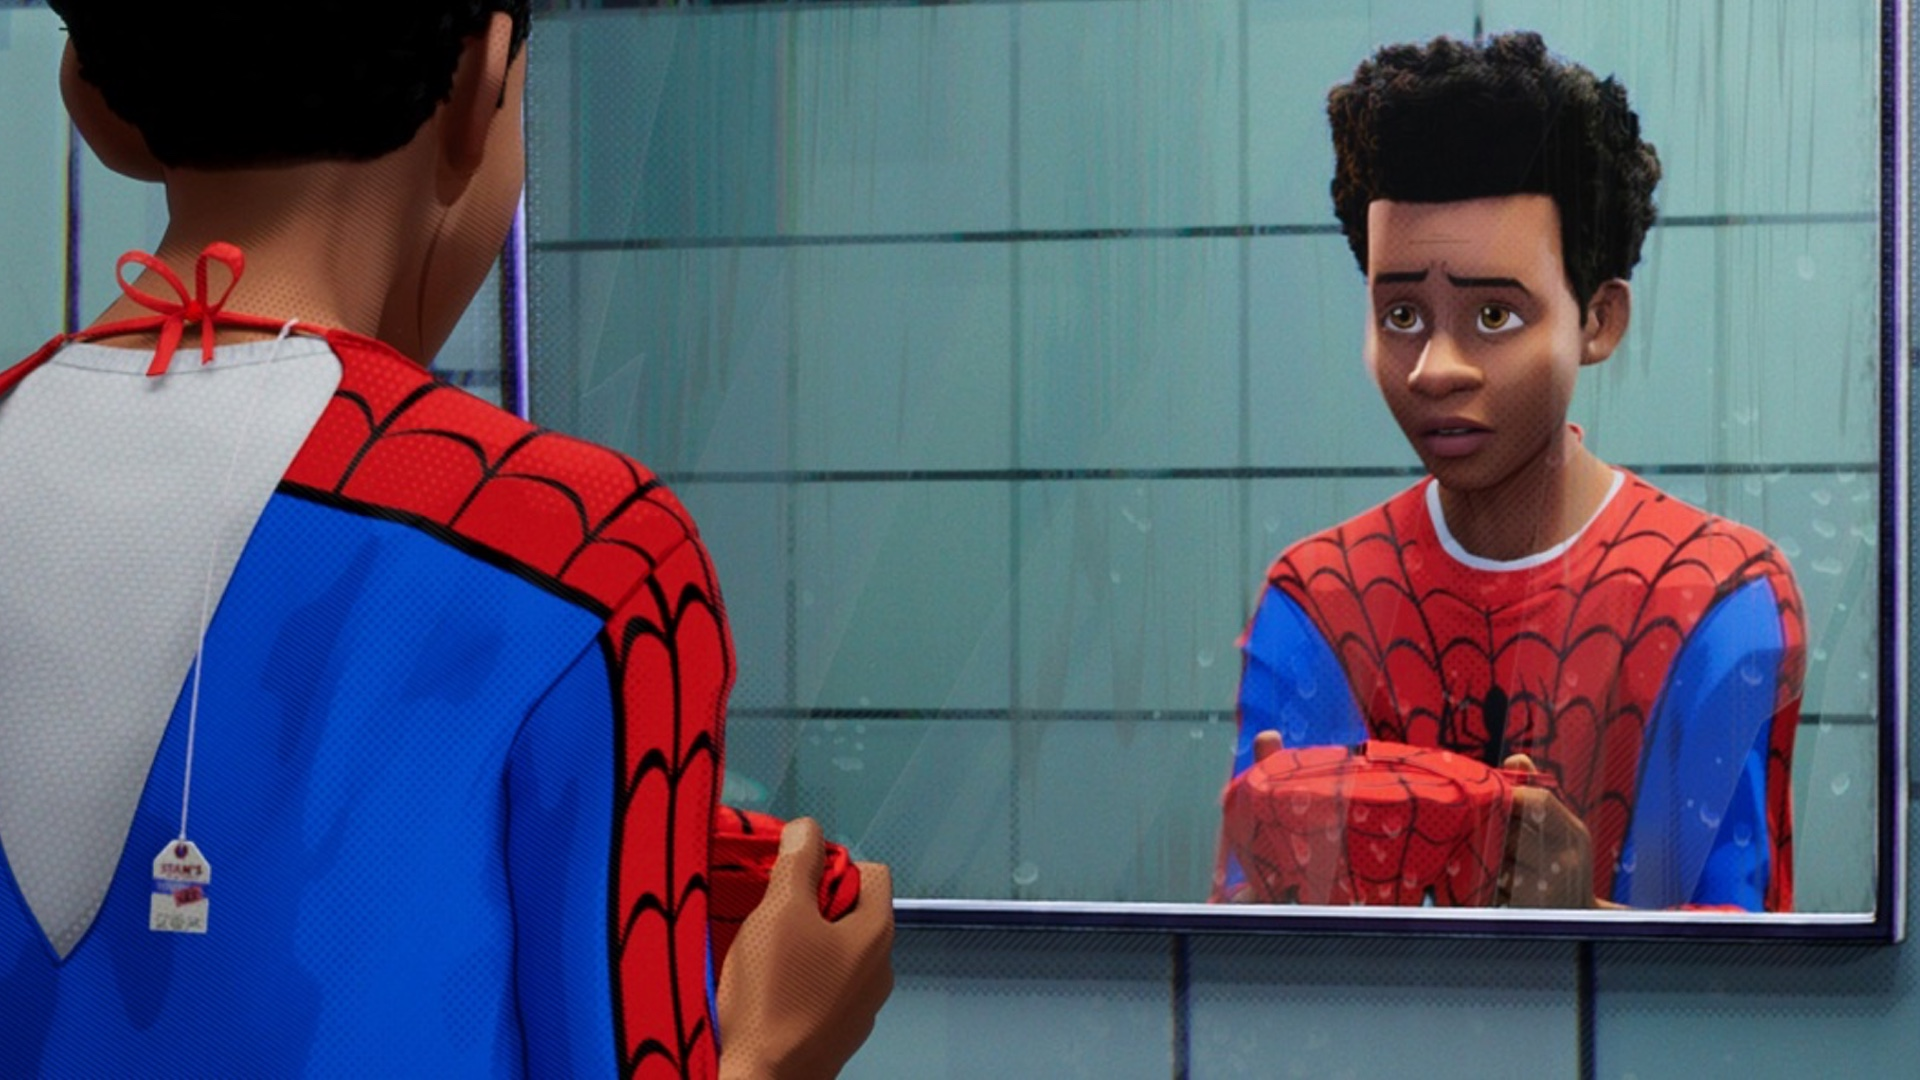 the-utah-film-critics-association-names-spider-man-into-the-spider-verse-best-film-of-2018-soicial.jpg